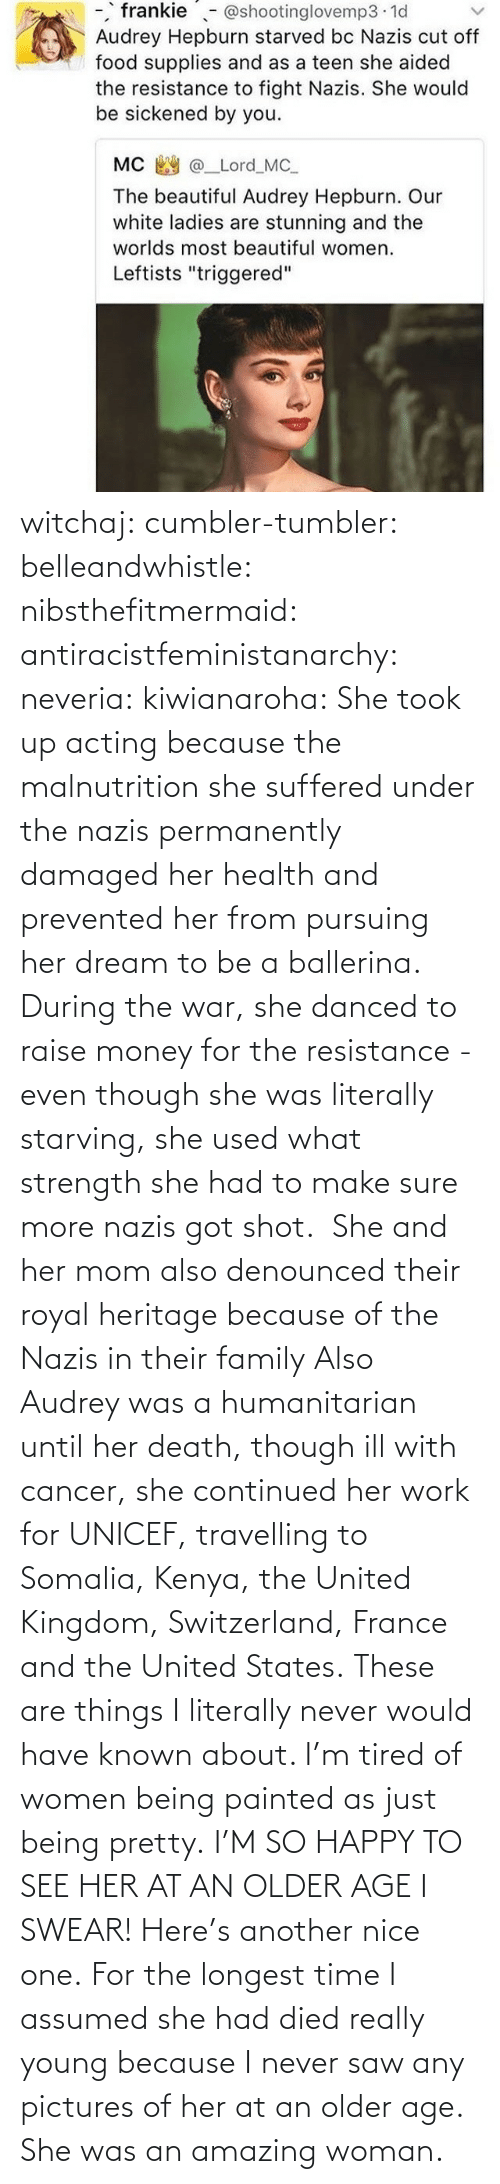 France: witchaj: cumbler-tumbler:  belleandwhistle:  nibsthefitmermaid:  antiracistfeministanarchy:  neveria:  kiwianaroha: She took up acting because the malnutrition she suffered under the nazis permanently damaged her health and prevented her from pursuing her dream to be a ballerina. During the war, she danced to raise money for the resistance - even though she was literally starving, she used what strength she had to make sure more nazis got shot.  She and her mom also denounced their royal heritage because of the Nazis in their family  Also Audrey was a humanitarian until her death, though ill with cancer, she continued her work for UNICEF, travelling to Somalia, Kenya, the United Kingdom, Switzerland, France and the United States.  These are things I literally never would have known about. I'm tired of women being painted as just being pretty.  I'M SO HAPPY TO SEE HER AT AN OLDER AGE I SWEAR!  Here's another nice one.   For the longest time I assumed she had died really young because I never saw any pictures of her at an older age.  She was an amazing woman.